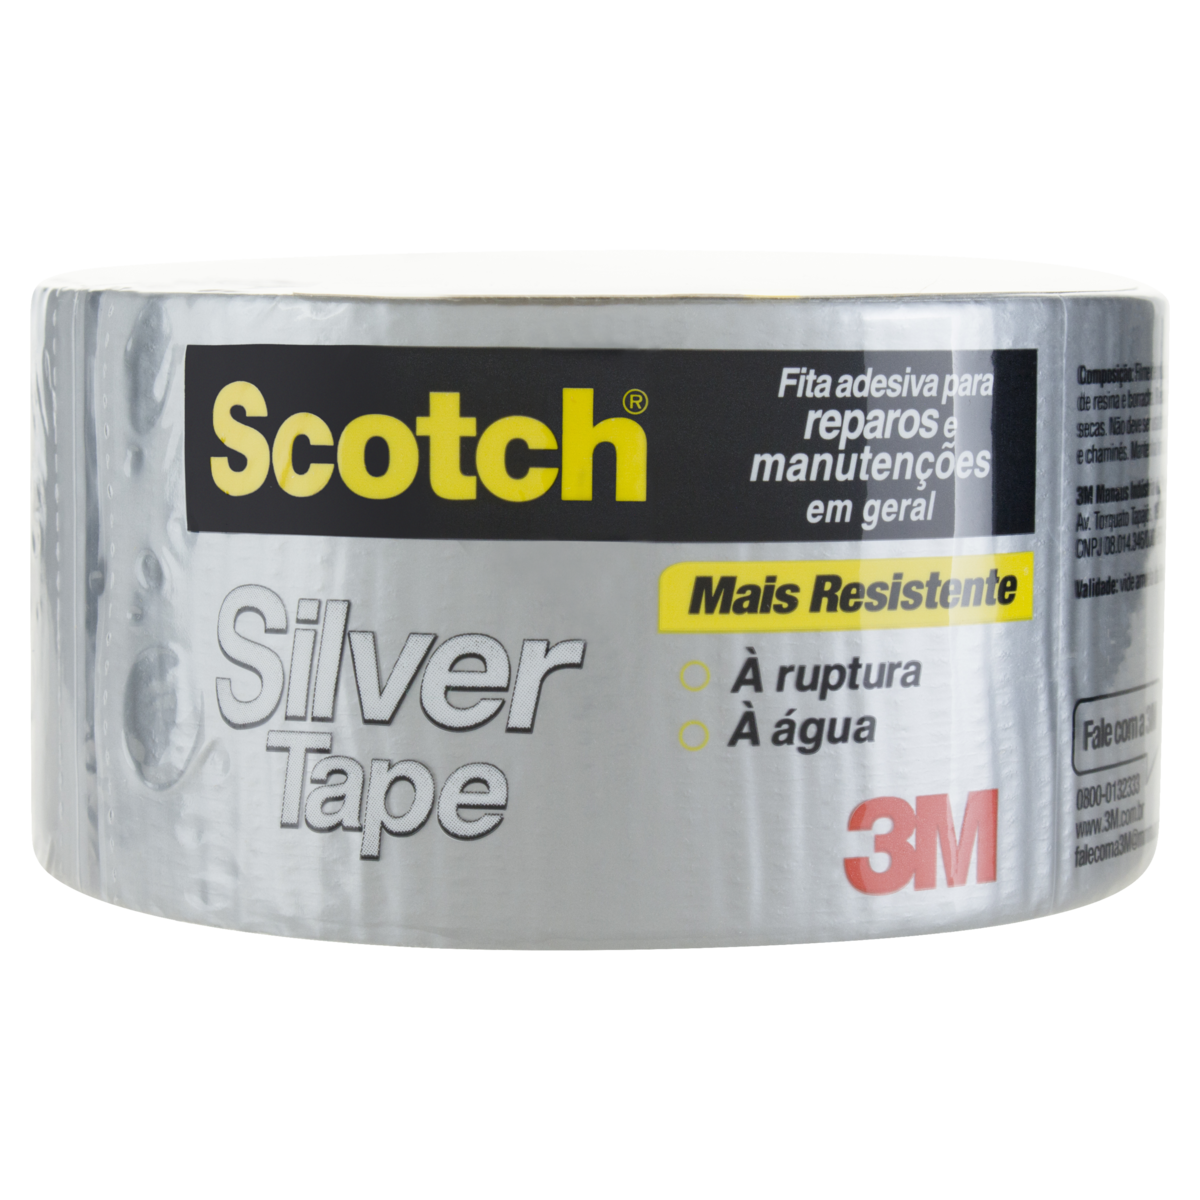 7891040119110 - FITA SILVER TAPE CINZA SCOTCH 45MM X 5M